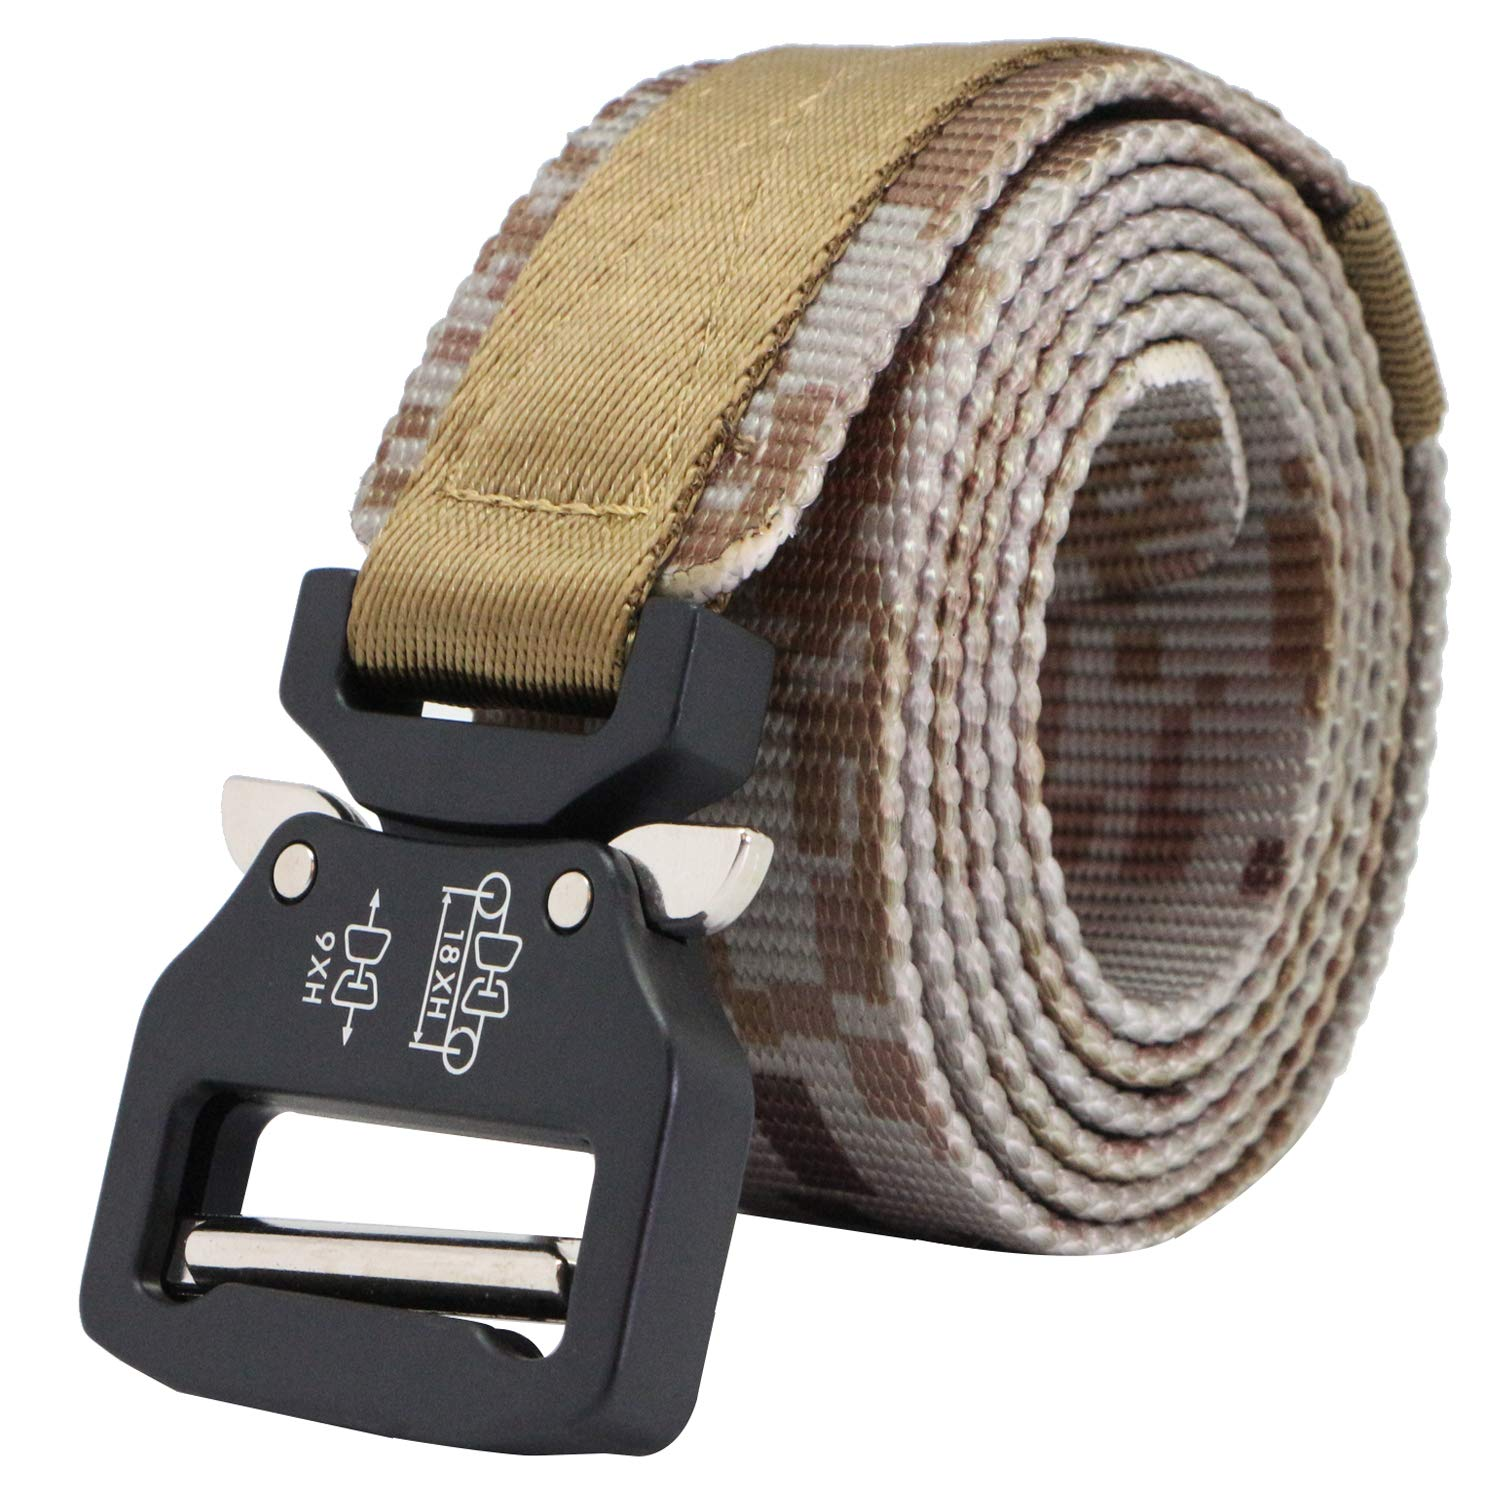 AIZESI Men Tactical Military Nylon Riggers Belt with Stab Lock Style Heavy Buckle Belt for Work Outdoor Hiking Skiing Cycling,Adjustable for Pants Size Below 47'',49''